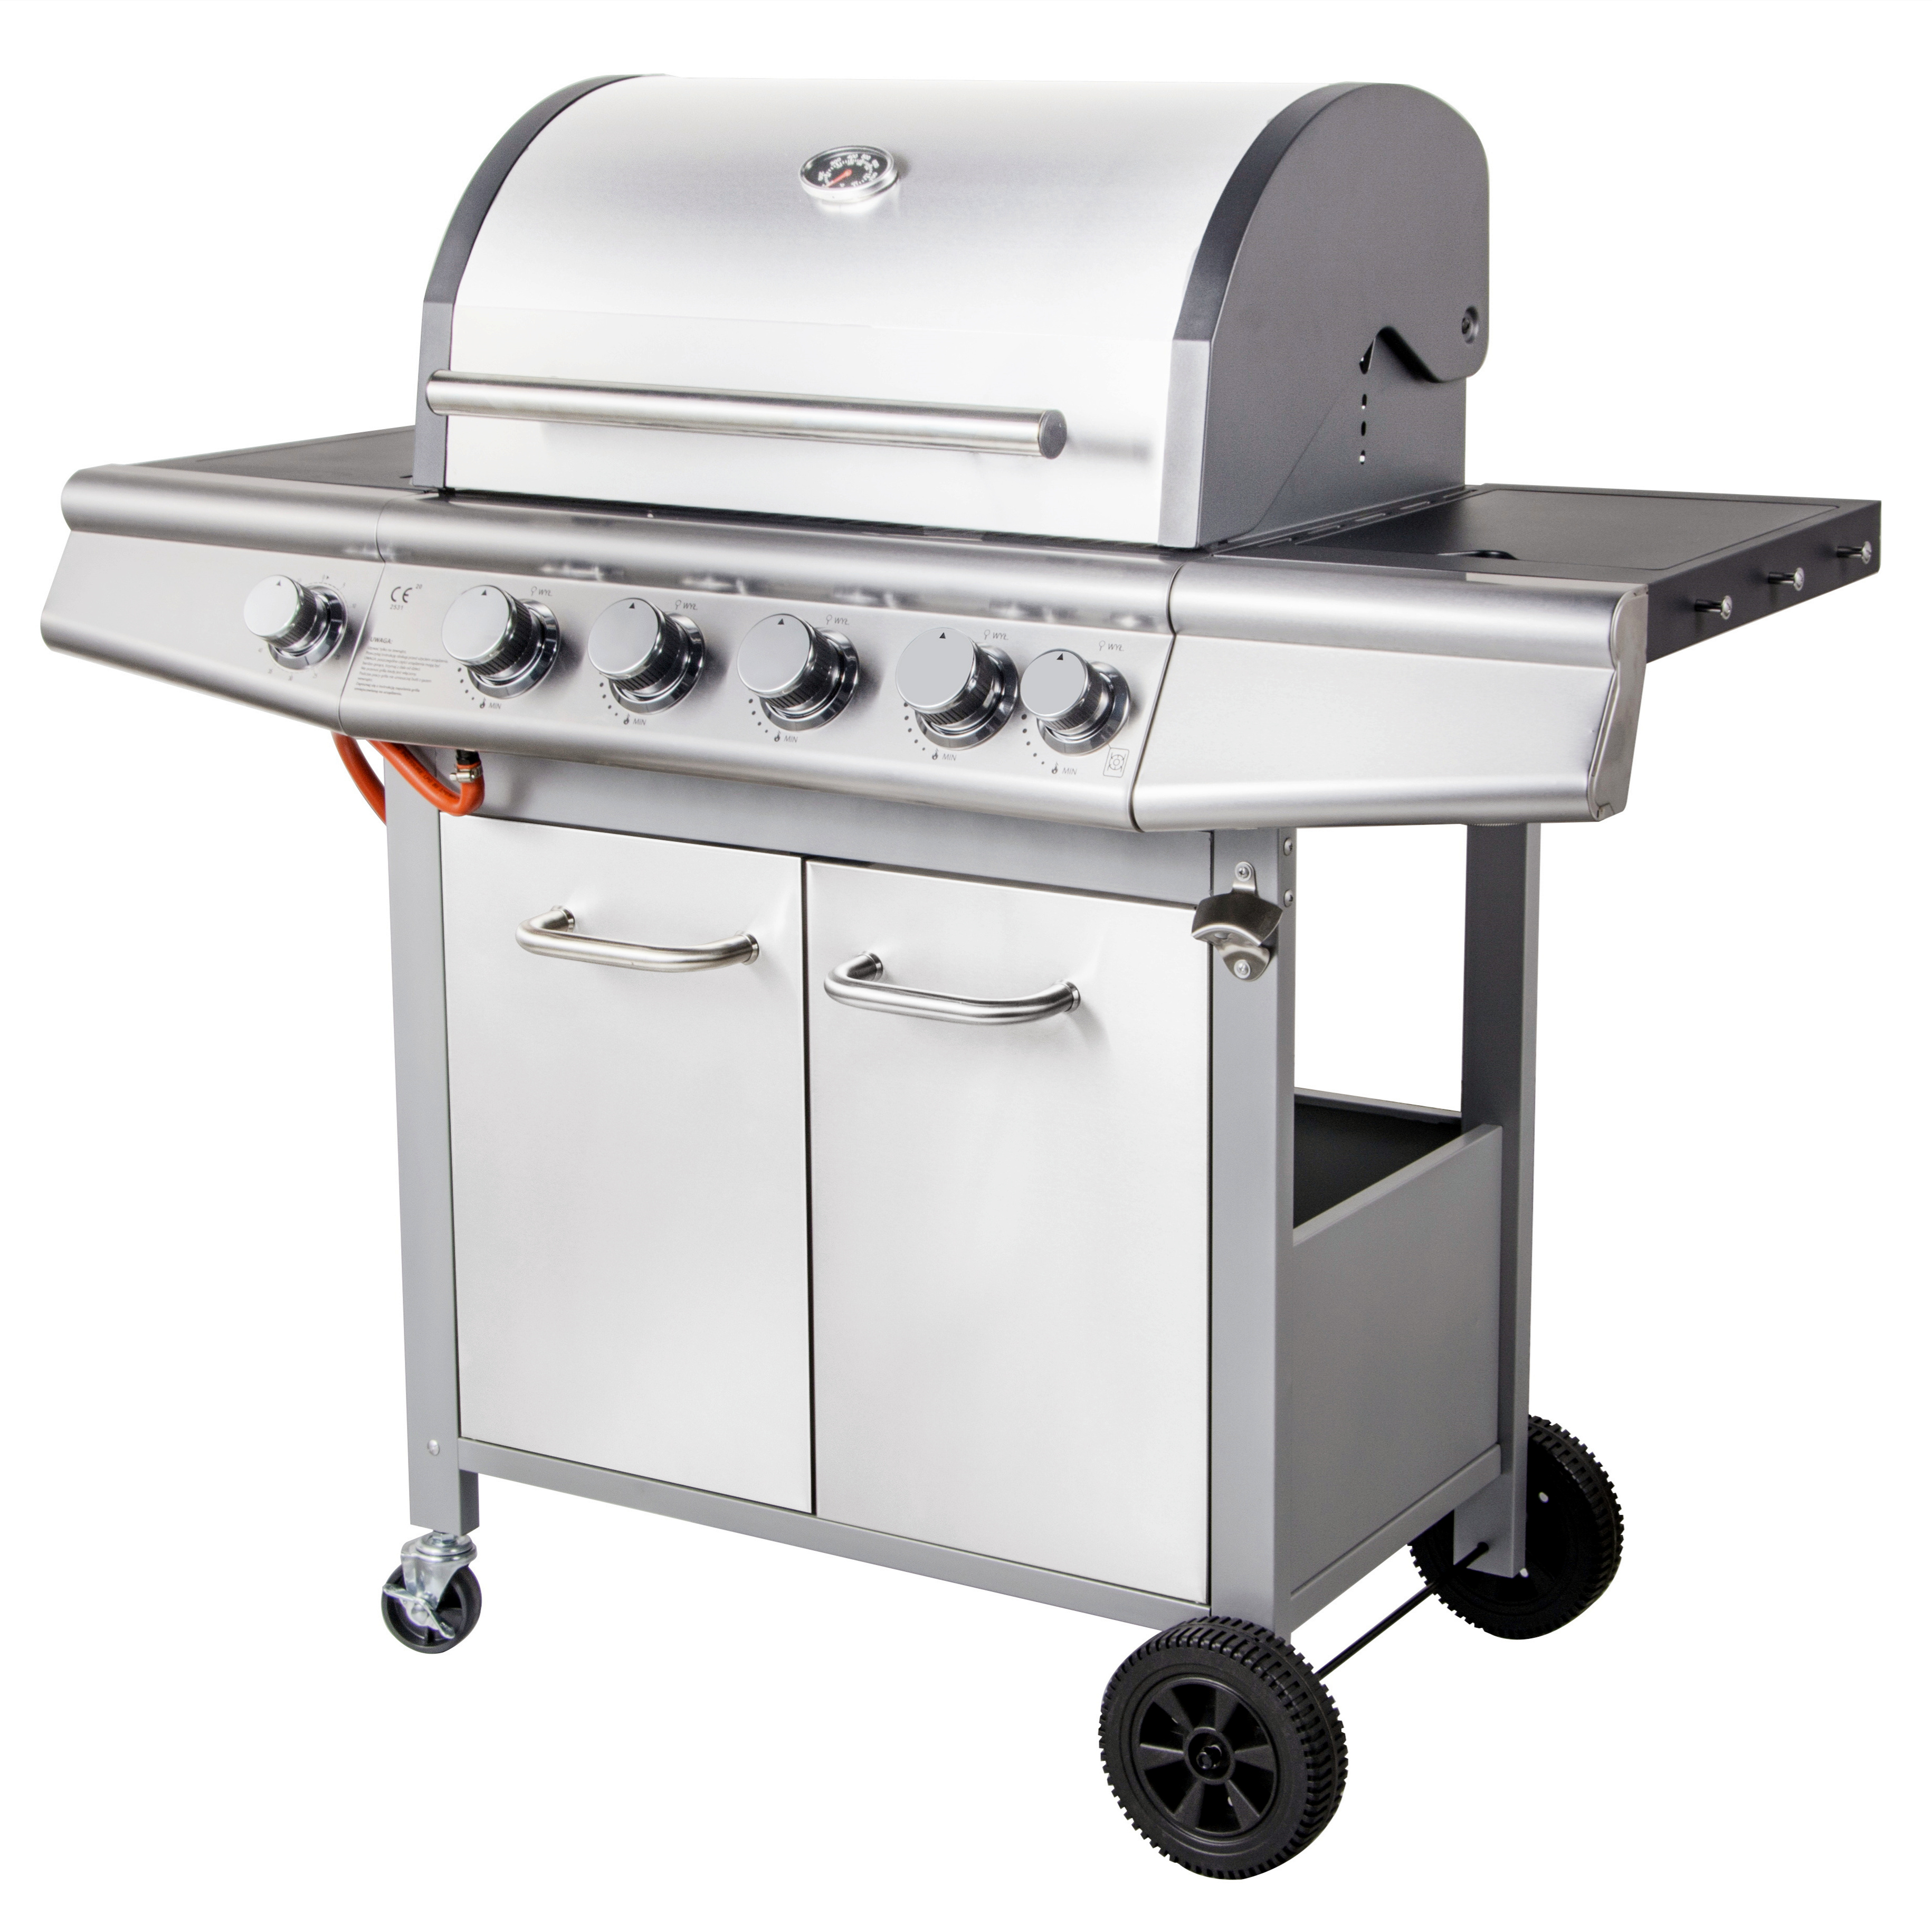 Cobinet Style Gas Grill